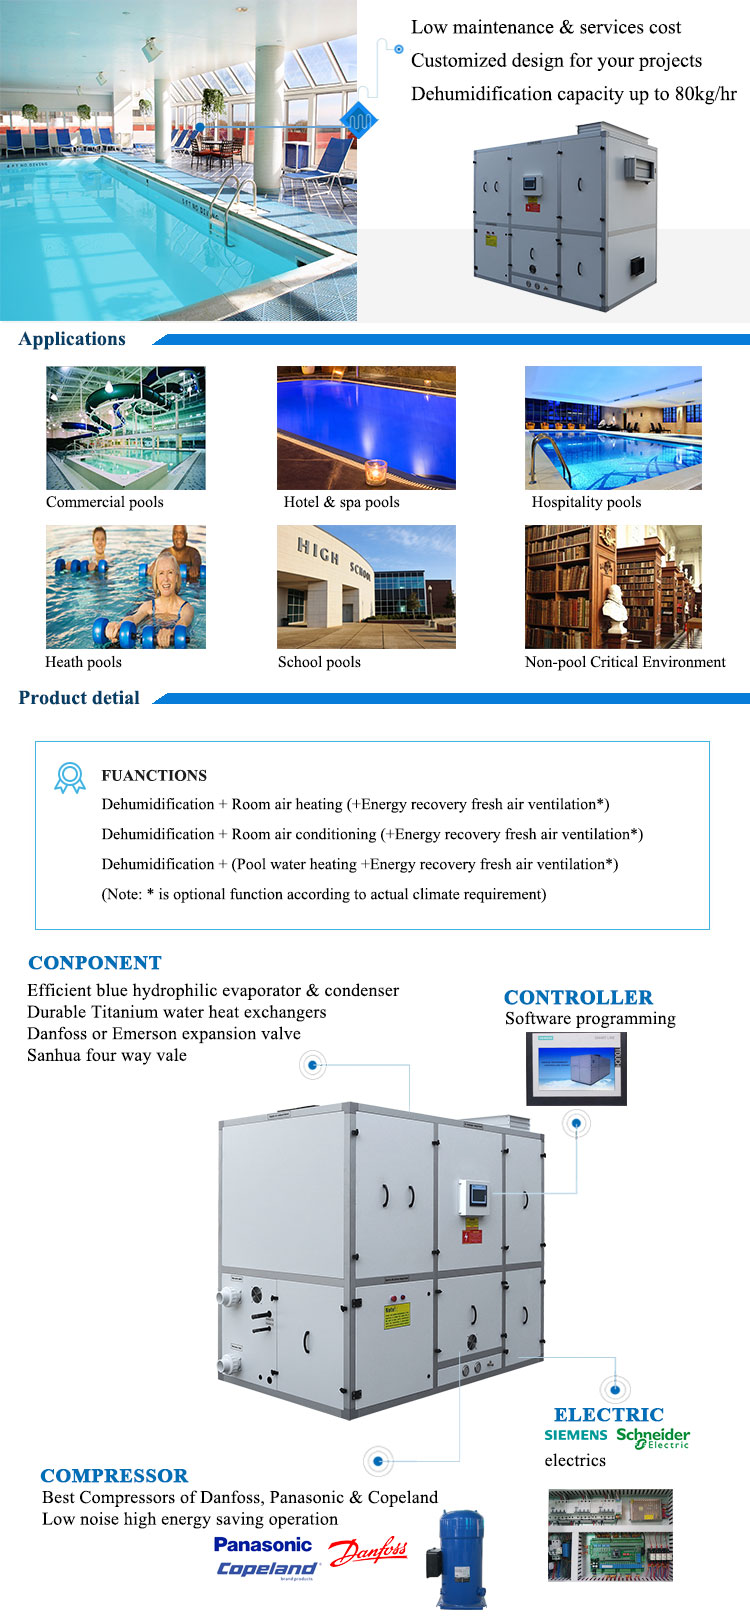 60L/h duct dehumidifier commercial & industrial use